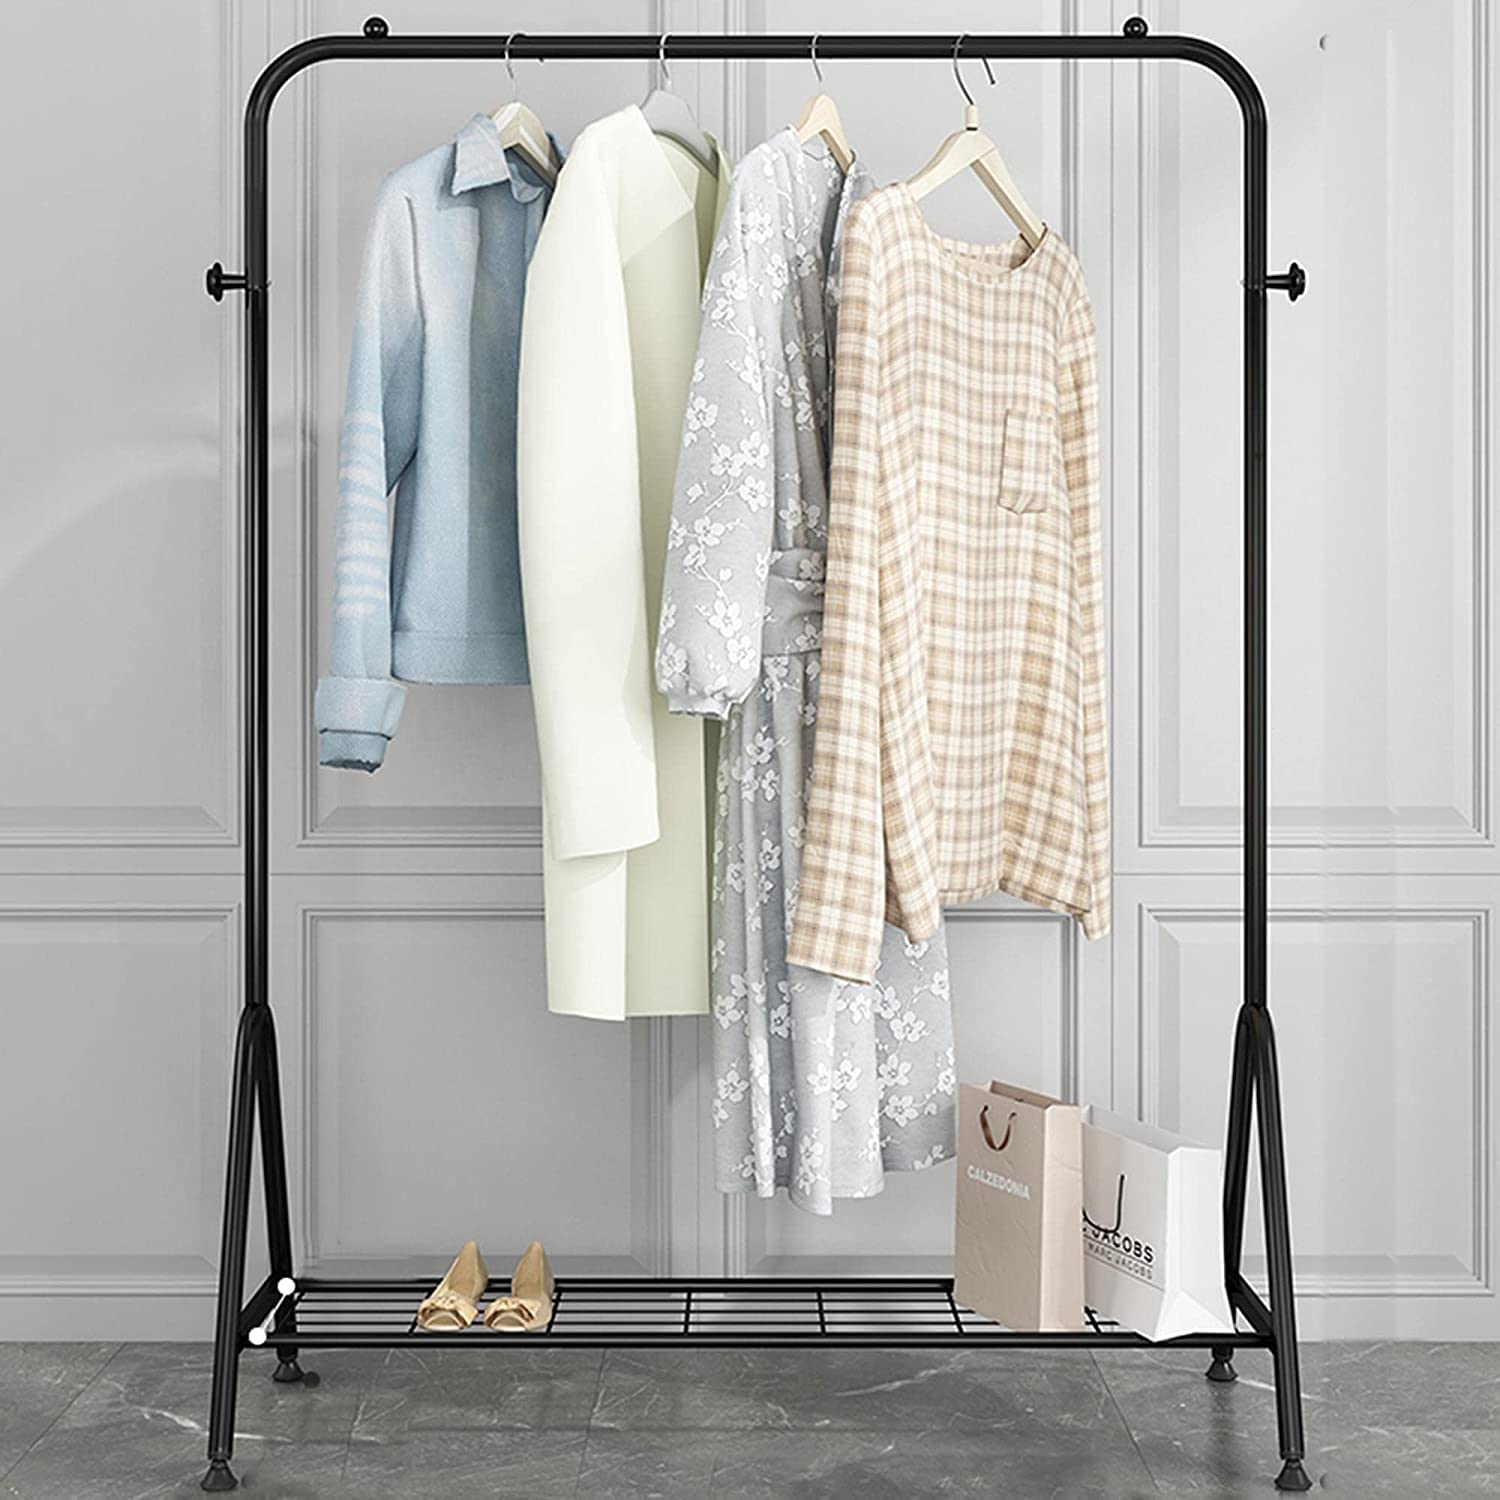 Clothing Display Fort Worth Mall Racks 25% OFF Iron Heavy-Duty Hangers Coat Open Home